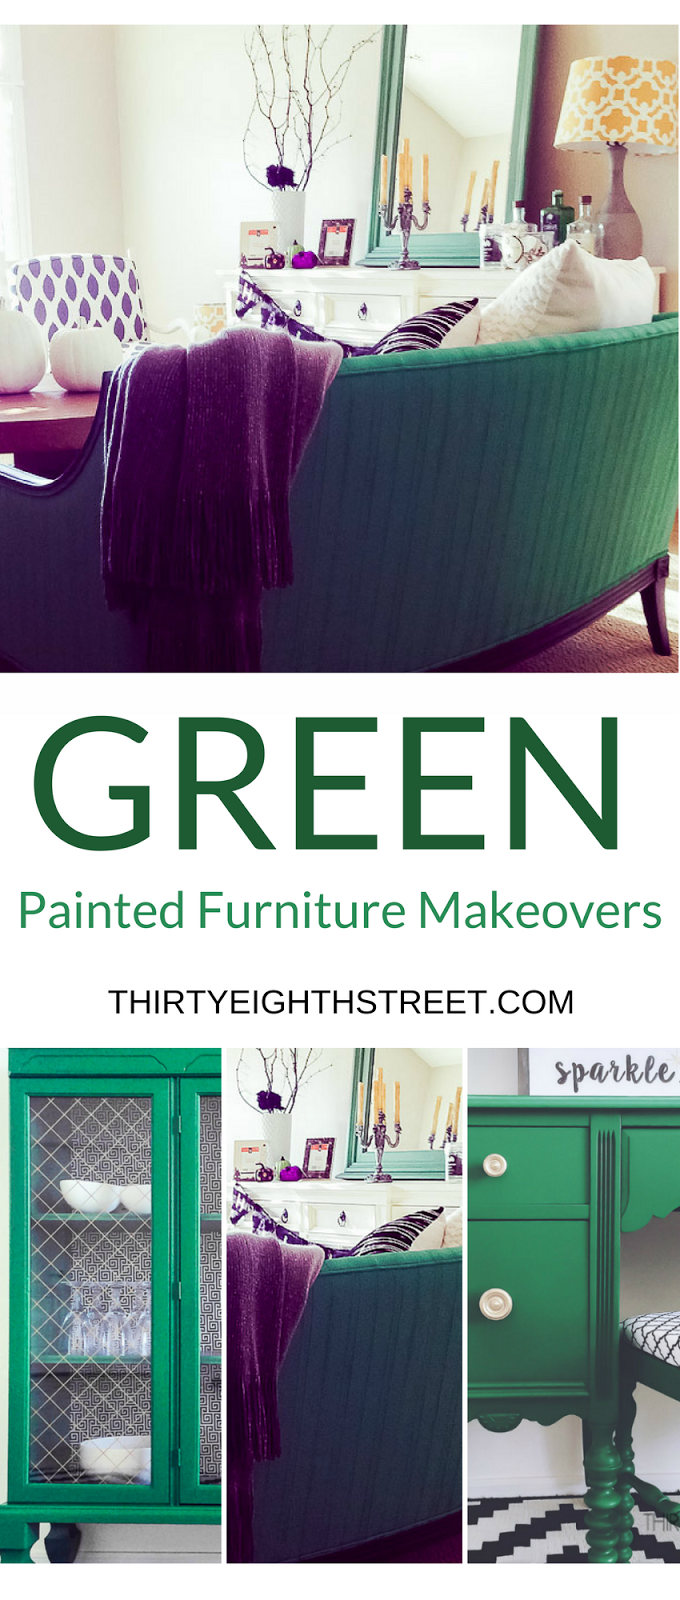 green furniture, furniture painting, painted furniture, painted green furniture, emerald green furniture, mint green furniture, green furniture makeovers